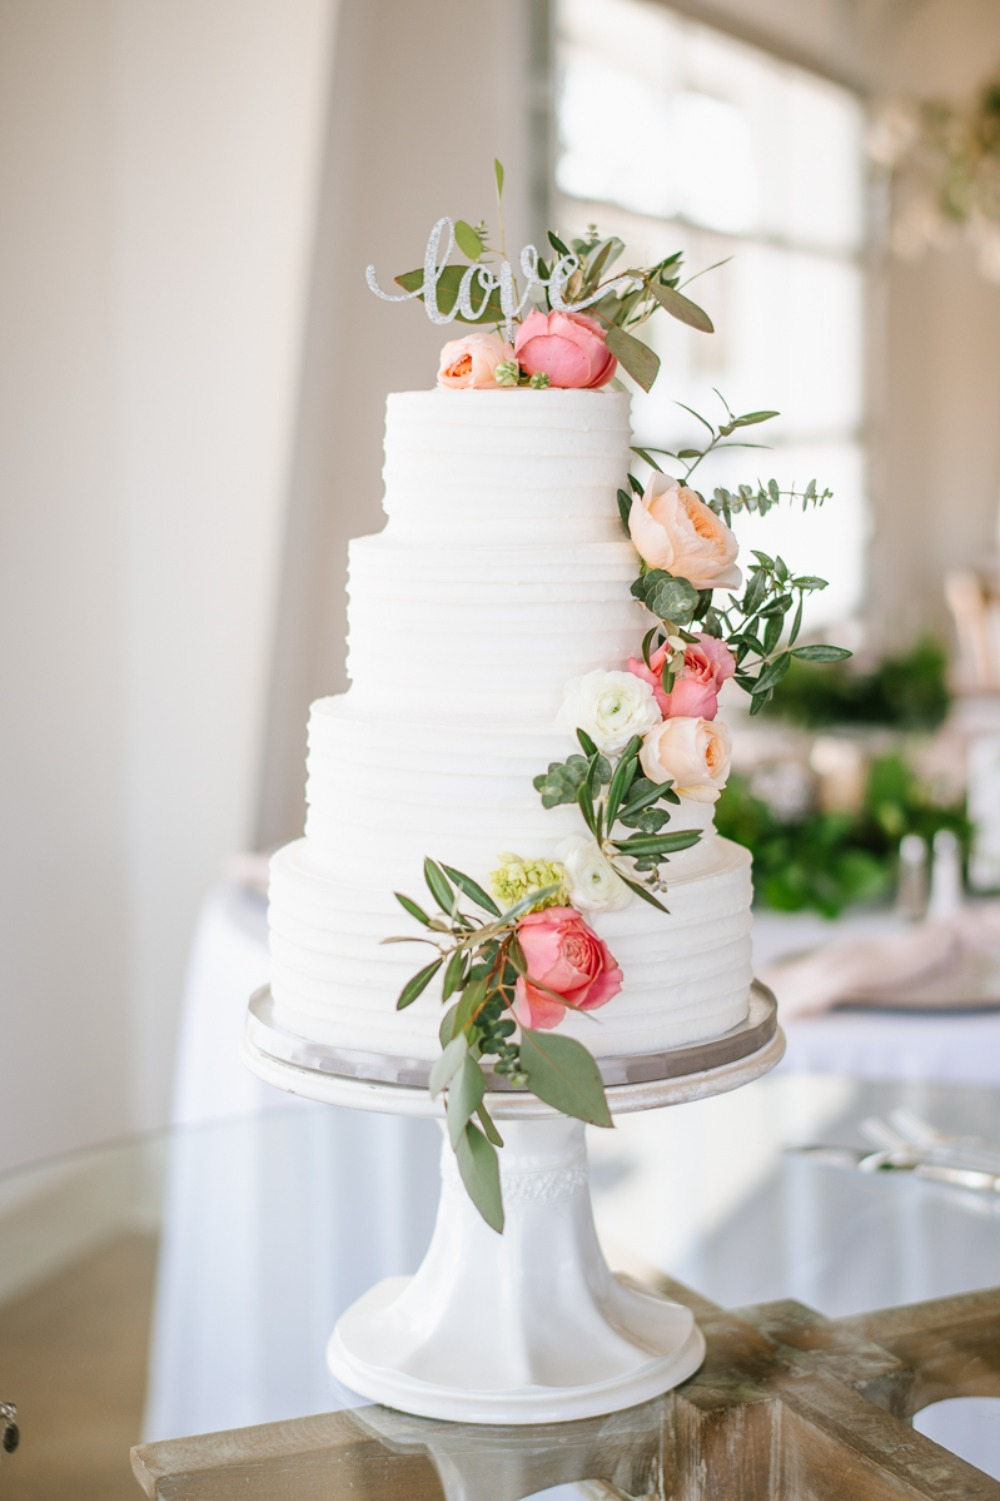 wedding cake with flower and greenery accents